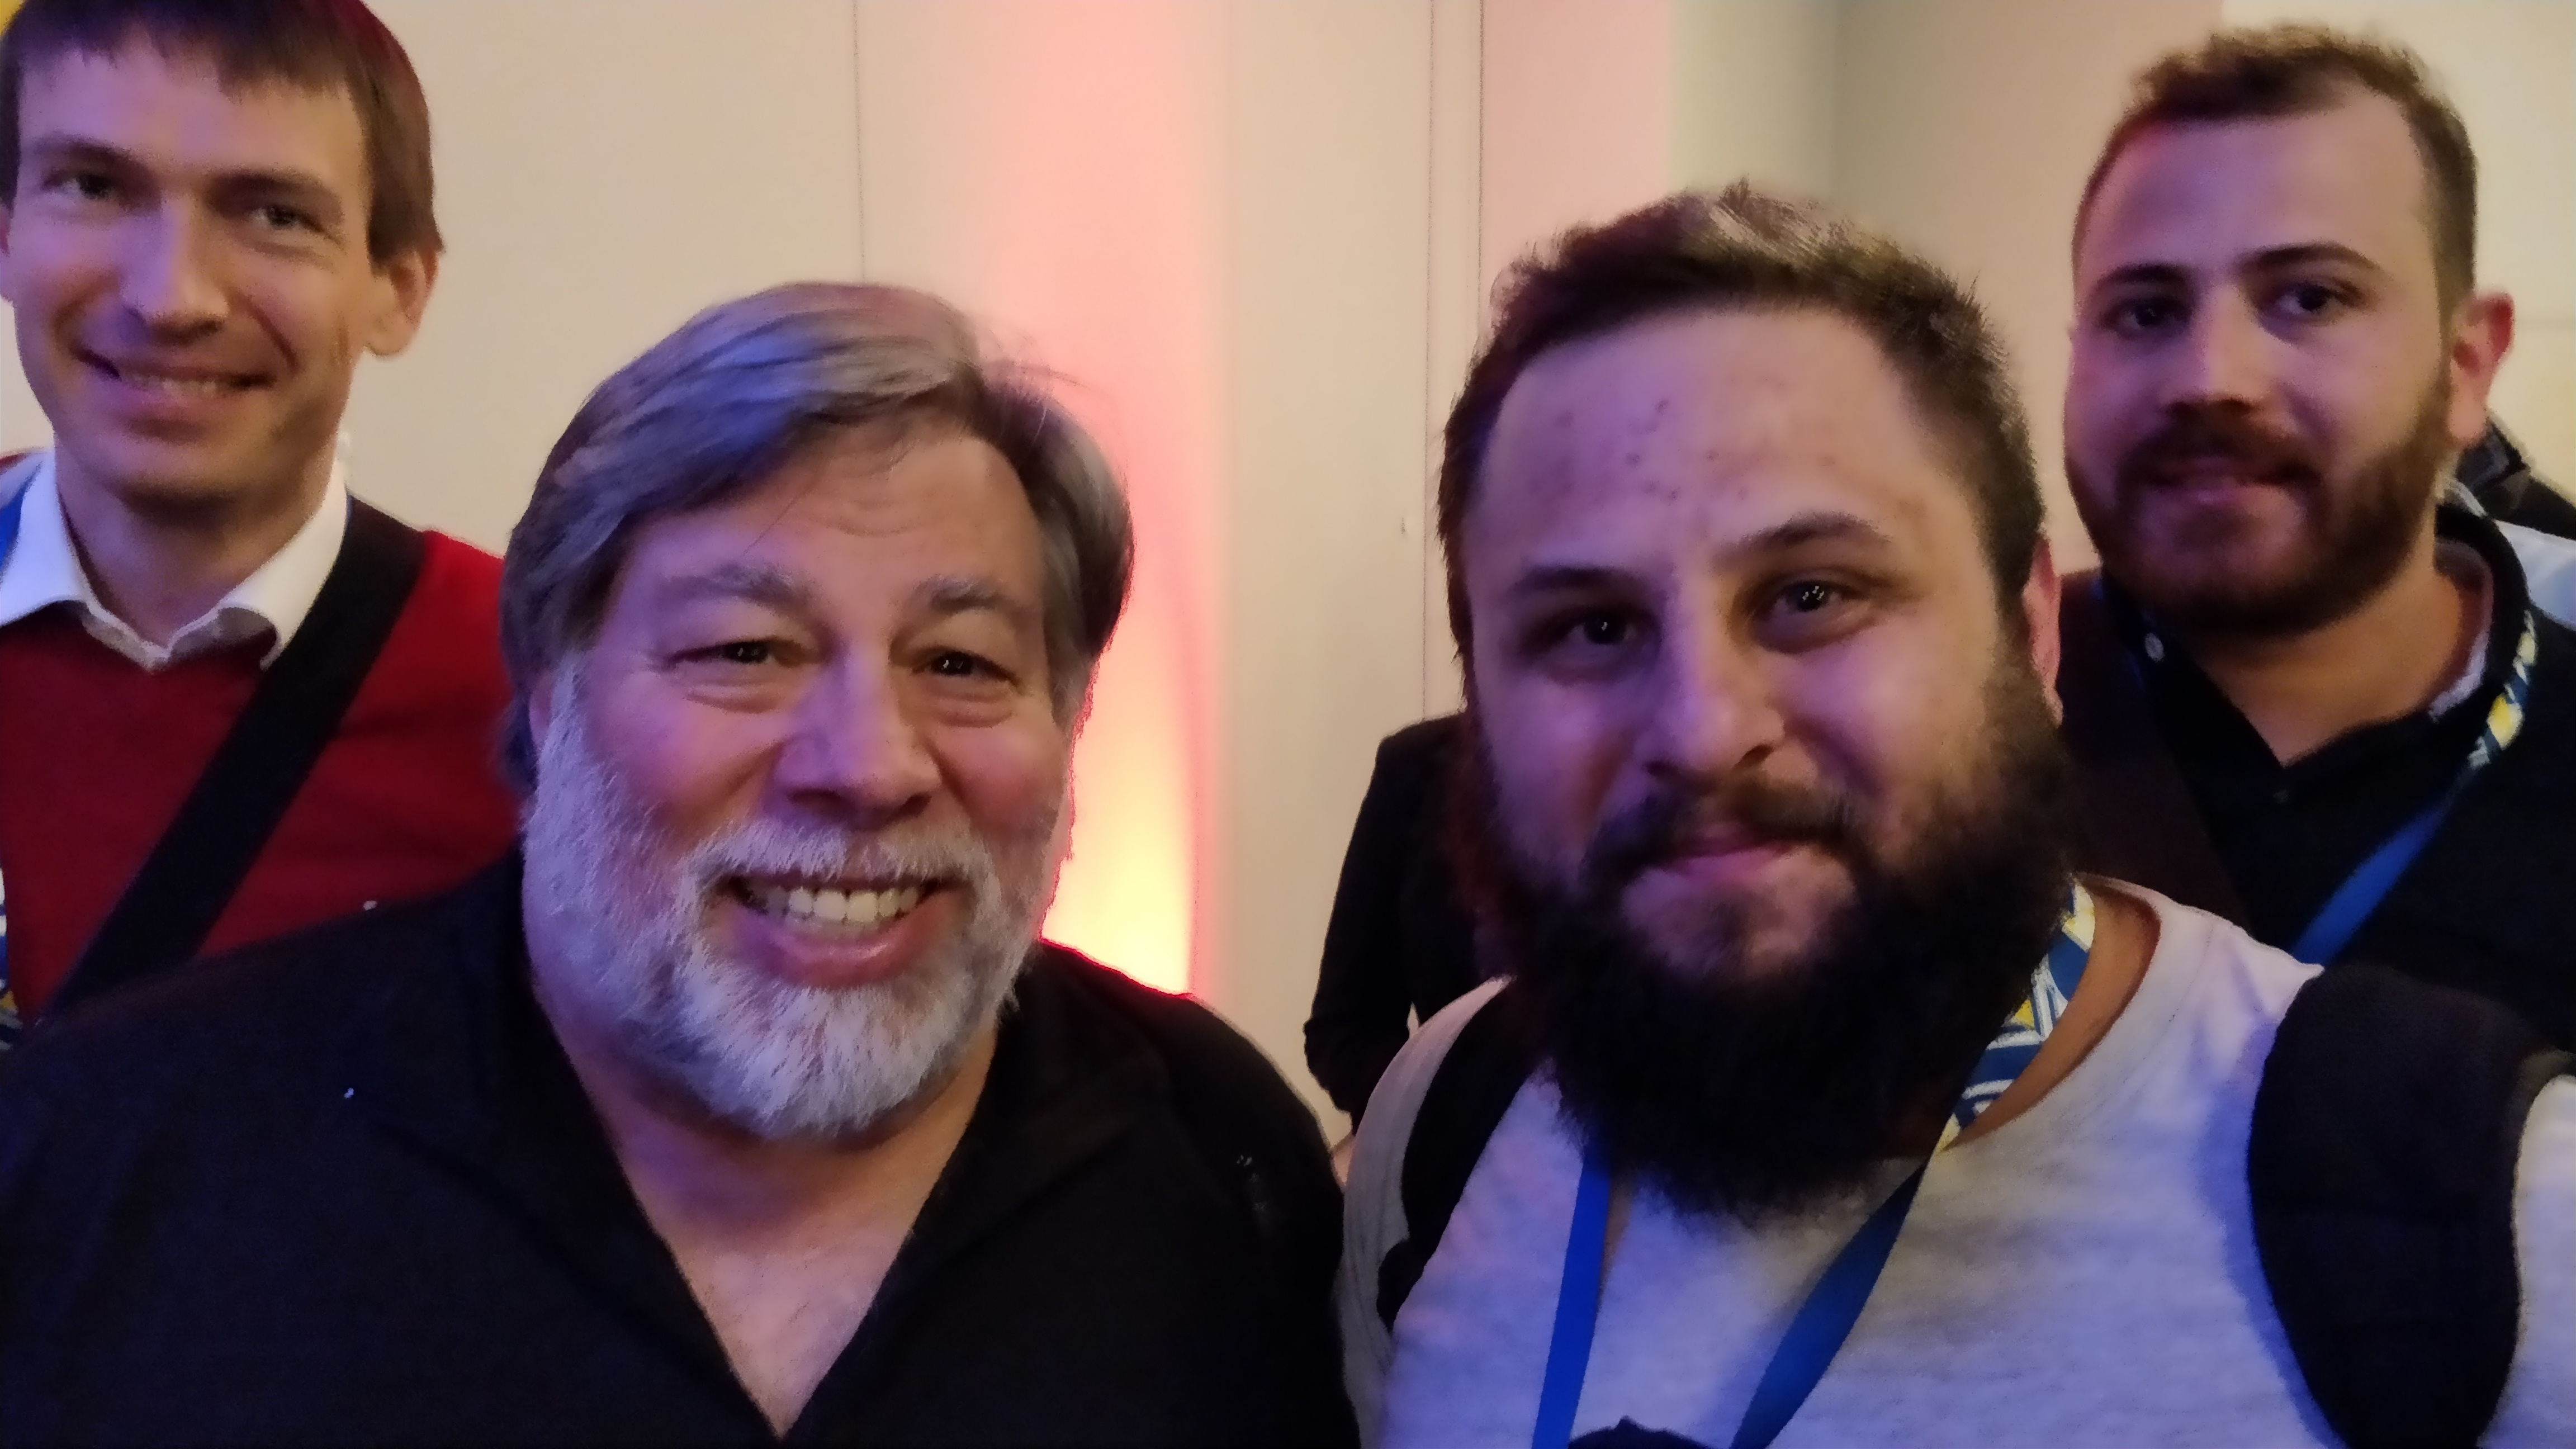 Edgars, Steve Wozniak, Myself and Michele